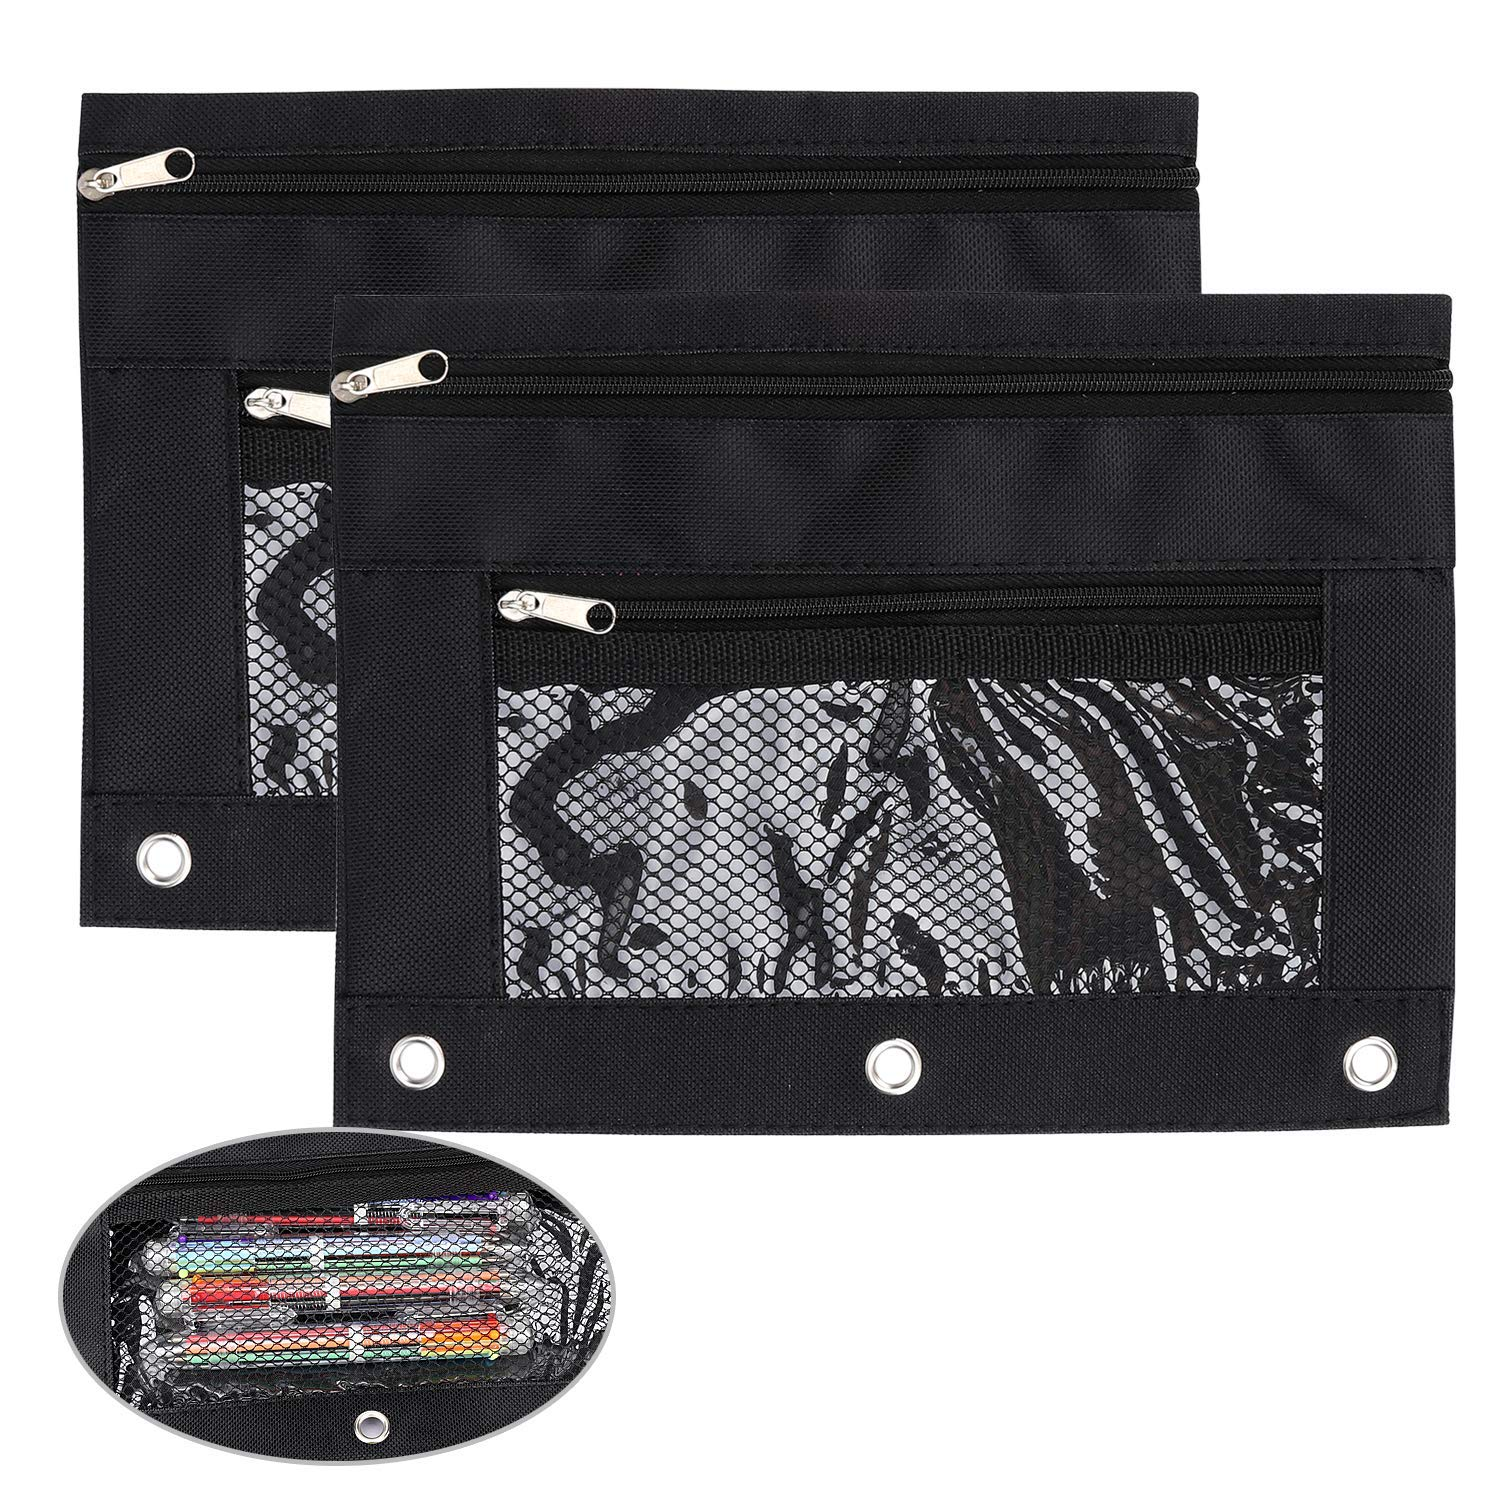 CIEHER 3-Ring Pencil Pouch with a Mesh Window Zipper Pencil Case with Mesh Window 6 Pieces per Set Black